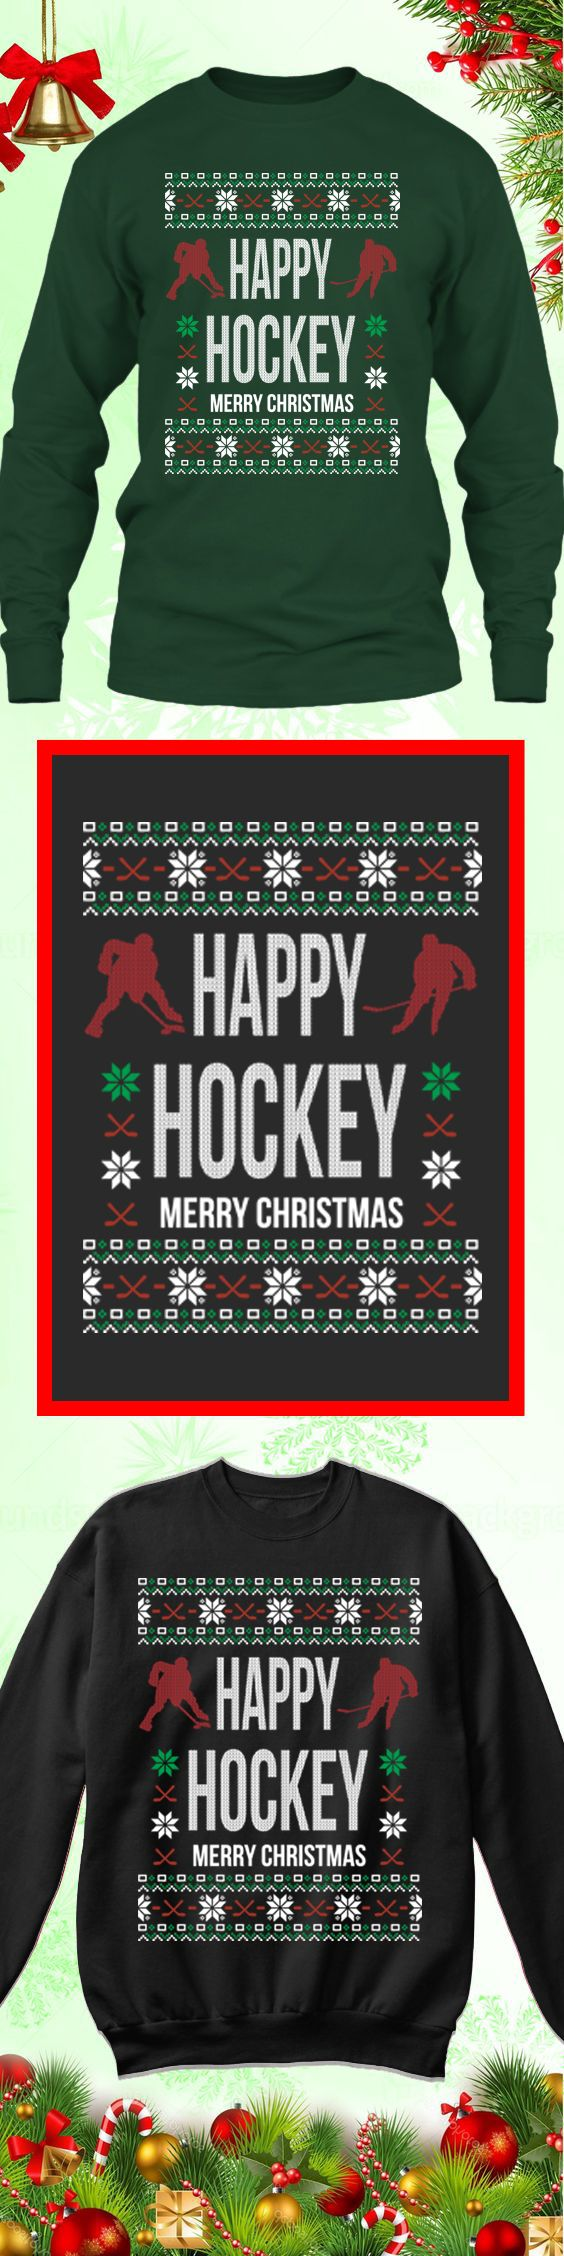 Need a last minute Christmas Gift? Get this limited edition Hockey Ugly Ugly Christmas Sweater while supplies last! Buy 2 or more, save on shipping!